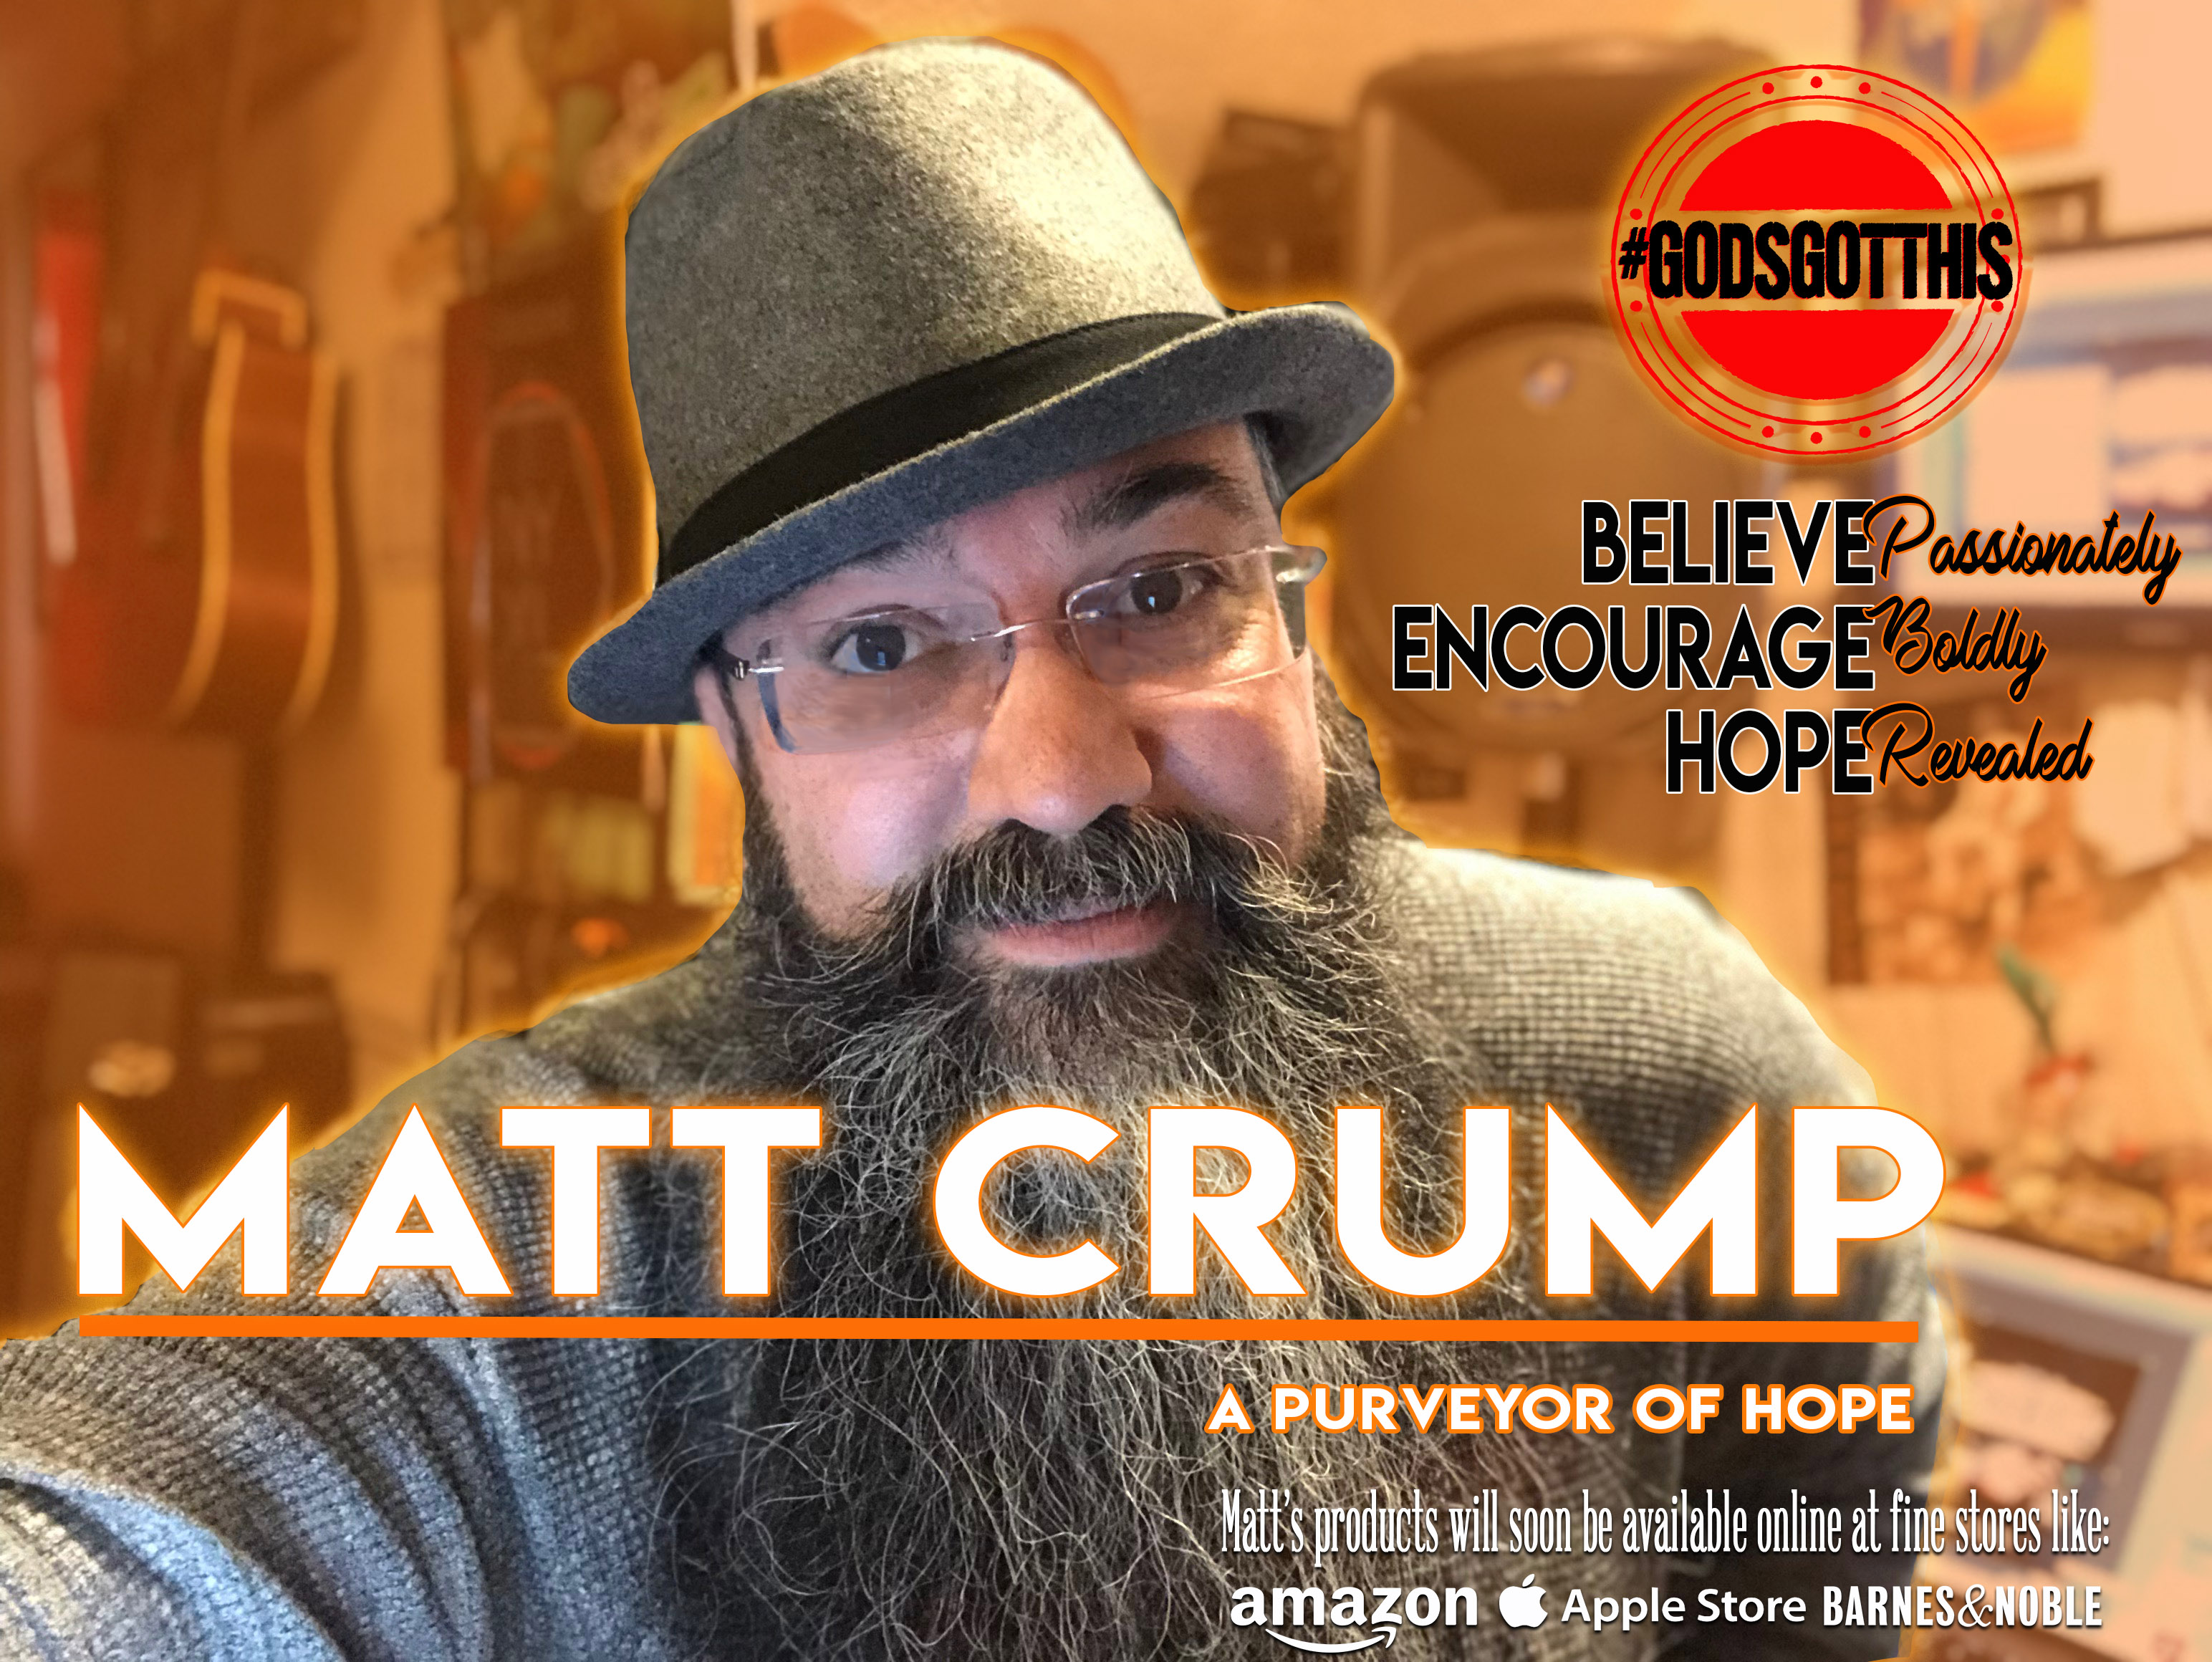 Matt Crump